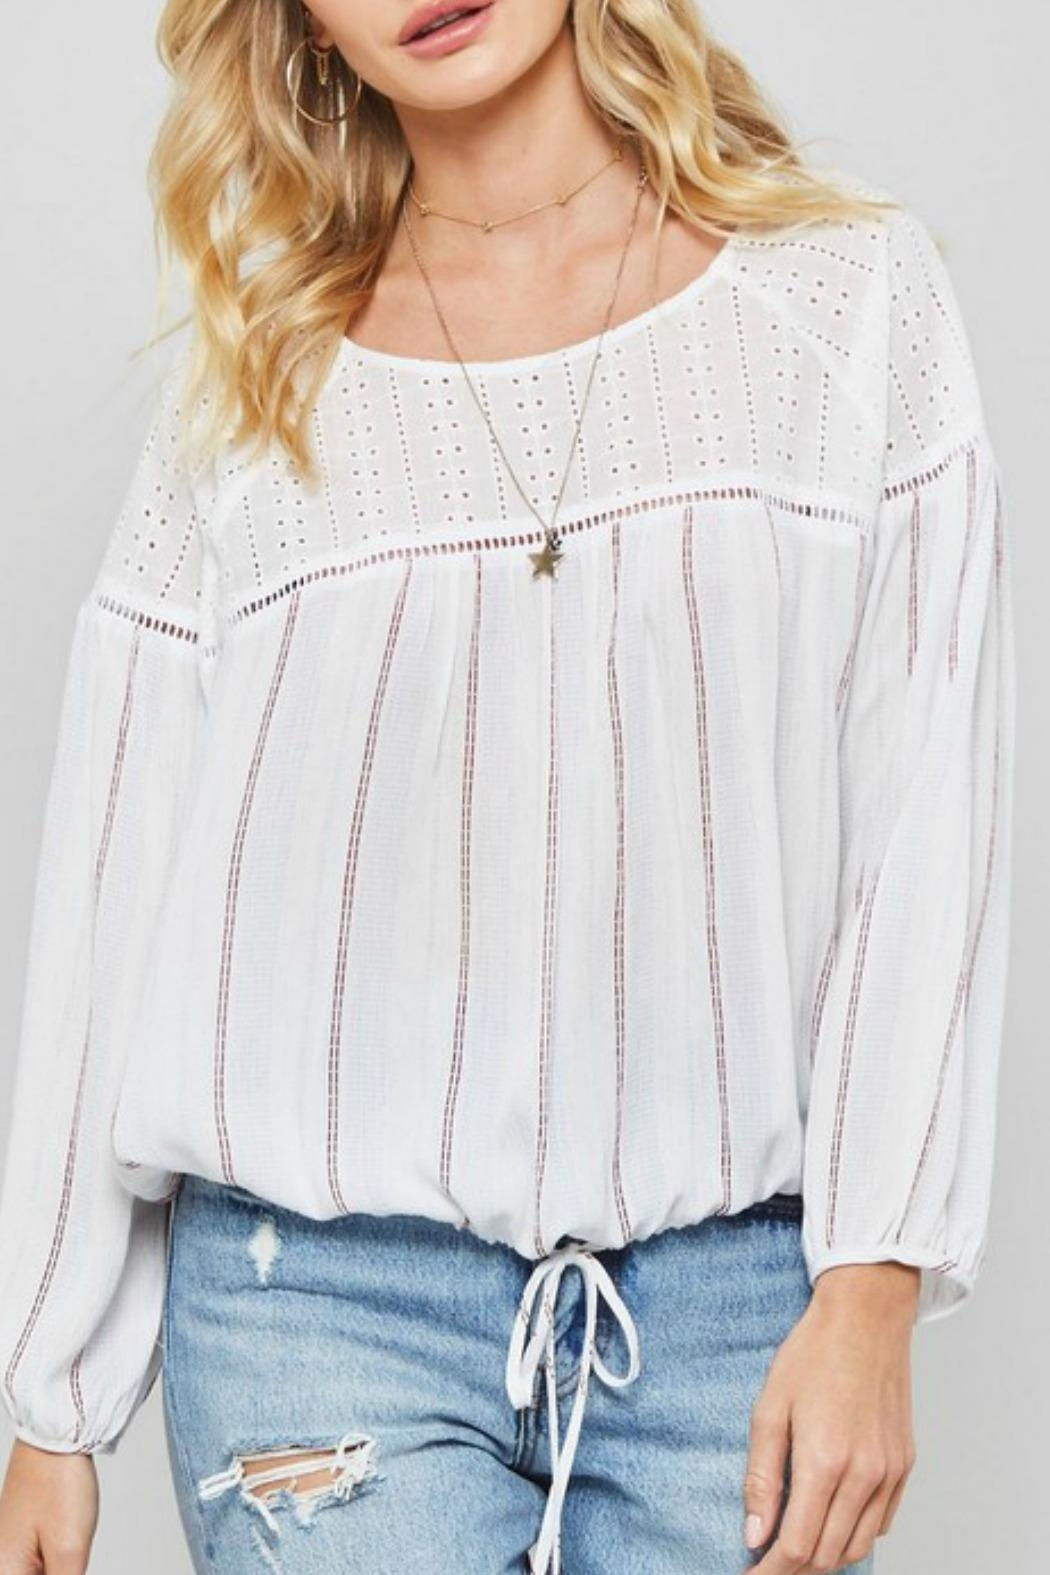 Promesa USA Joey Striped Top - Front Full Image